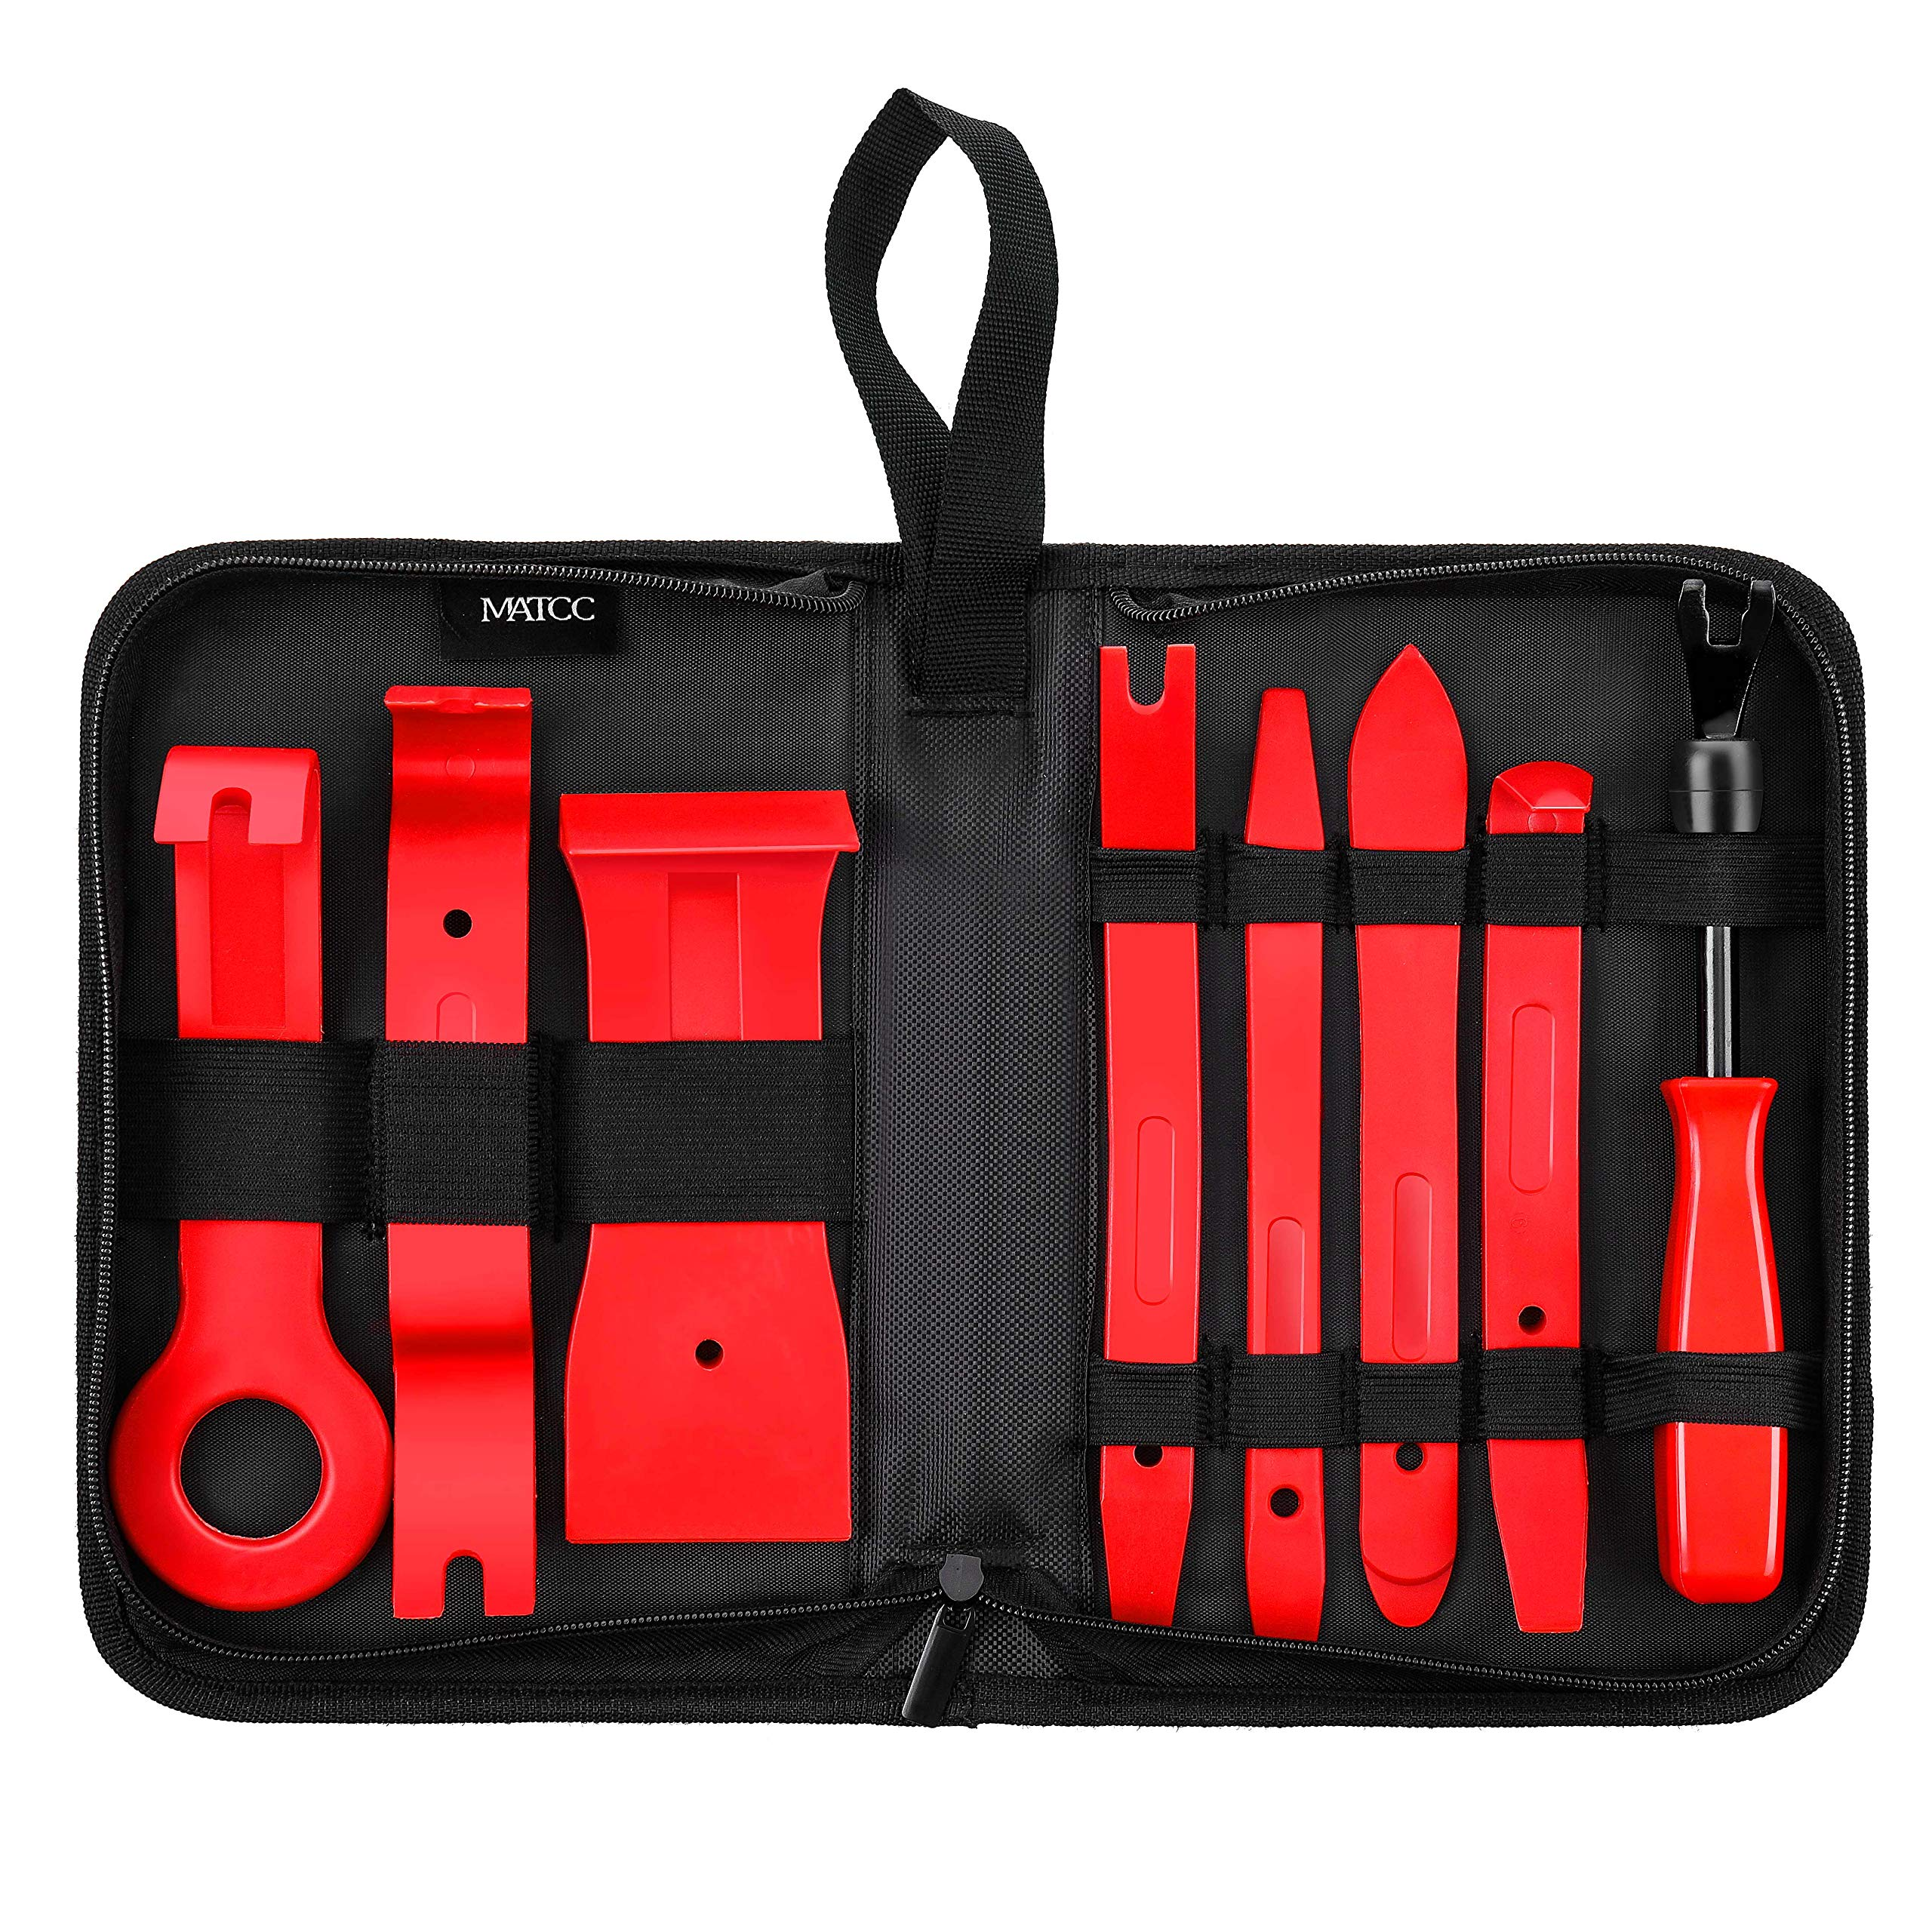 MATCC 8pcs Car Panel Removal Tools Trim Removal Tool Set Nylon for Car Door Panel Dash Audio Radio Removal Installer and Repair Pry Tools Kits with Fastener Remover Storage Bag